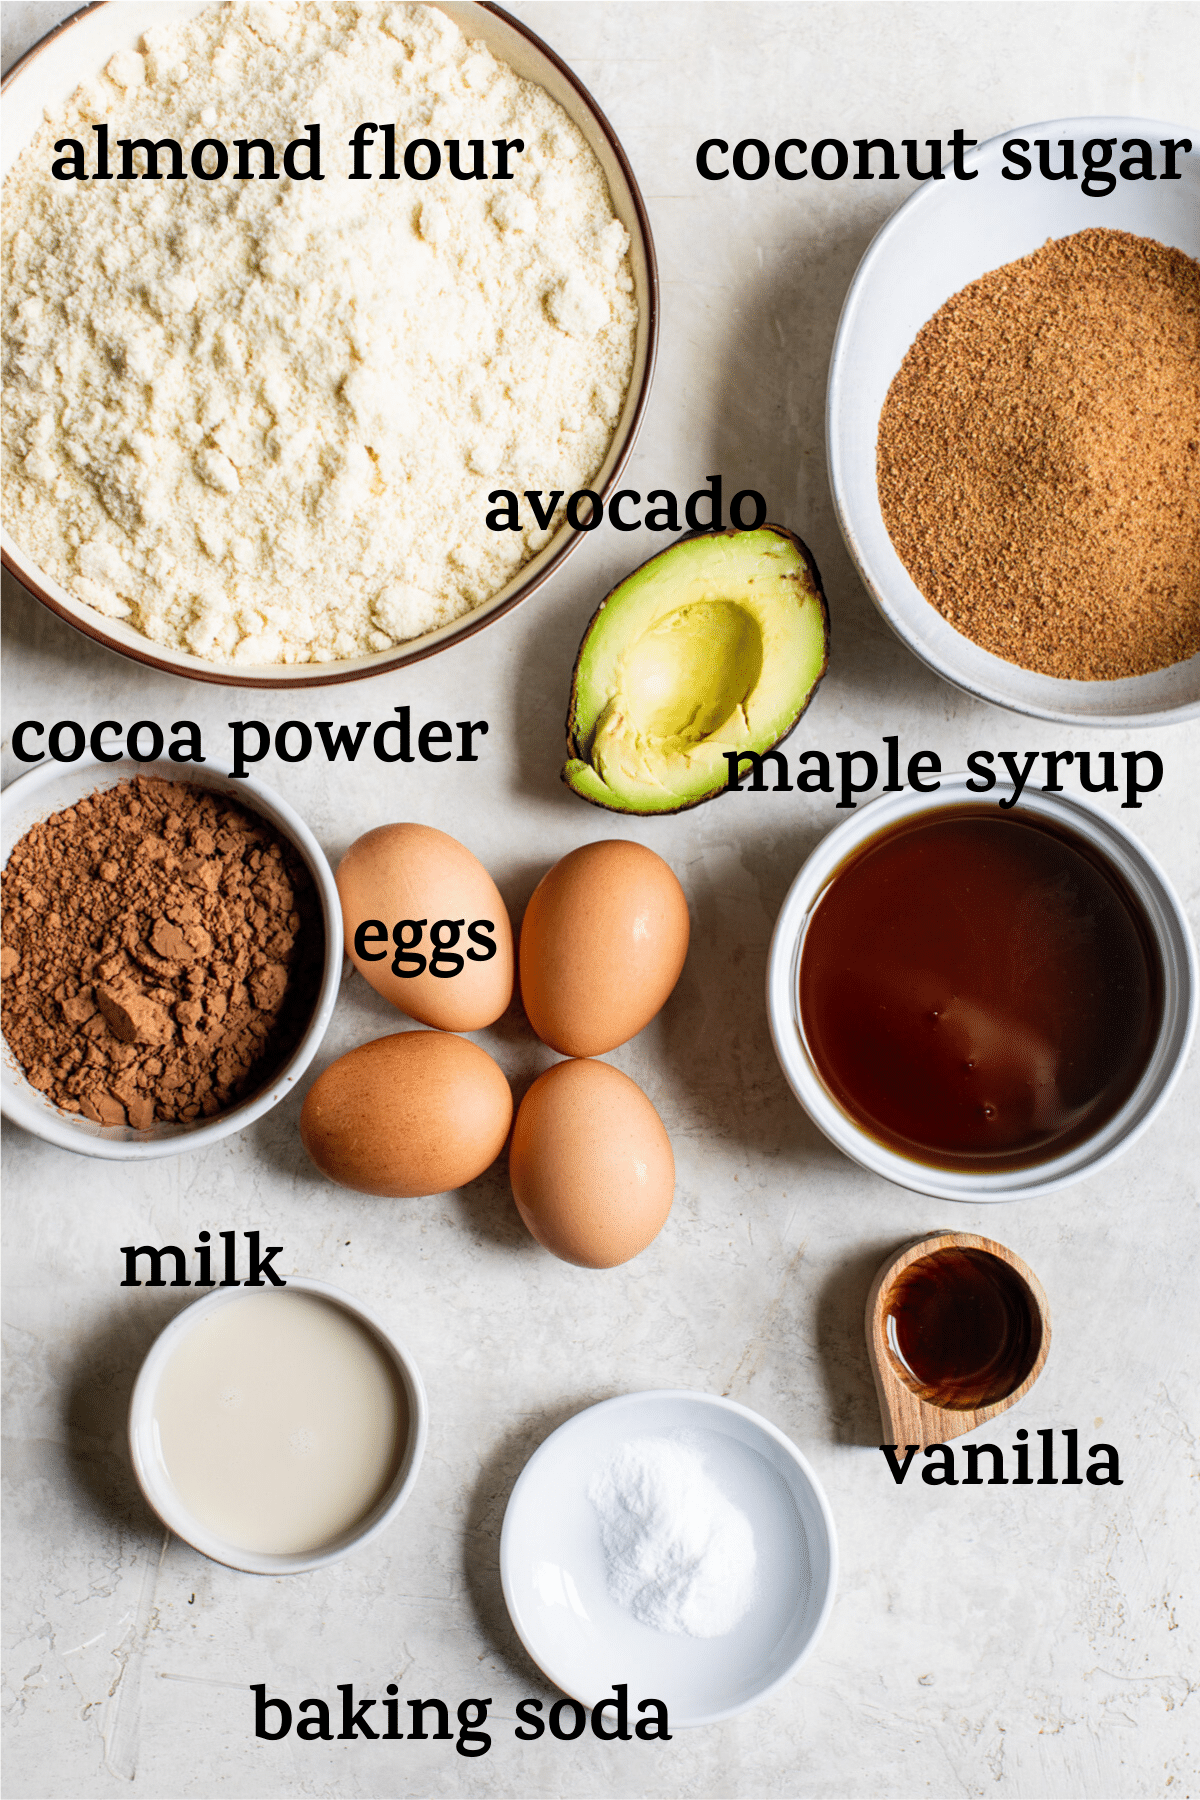 chocolate cake ingredients with text overlay